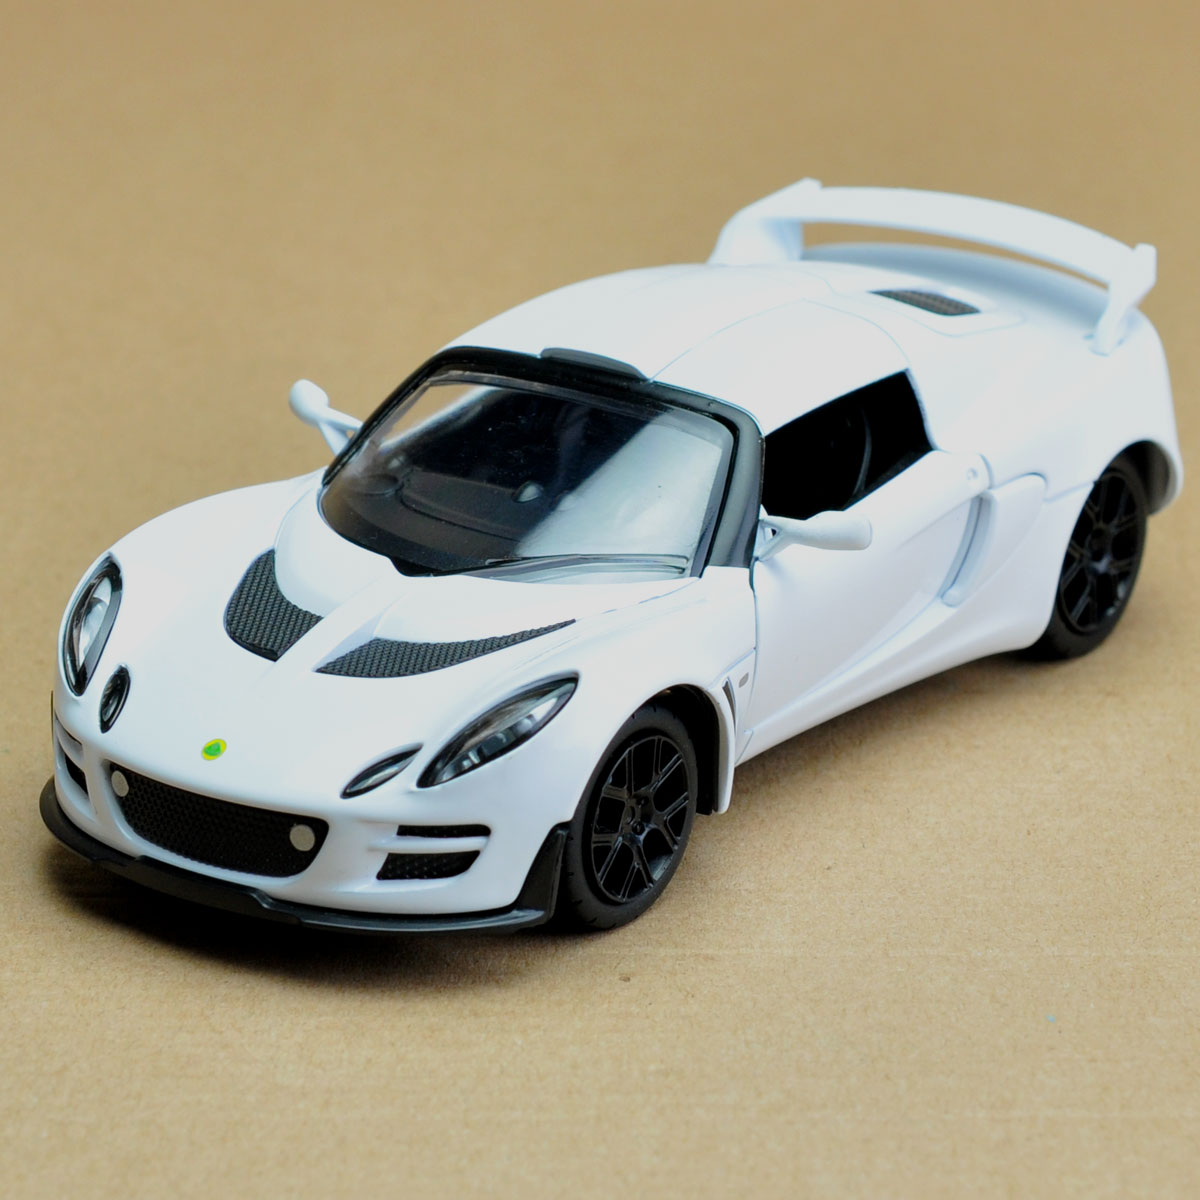 Supercar Model Cars, 1:32 Alloy, Hot Wheels Toy Cars, Pull Back Models  Car,car Covers,open The Door,Lotus Cool Pull, Supercar In Diecasts U0026 Toy  Vehicles ...